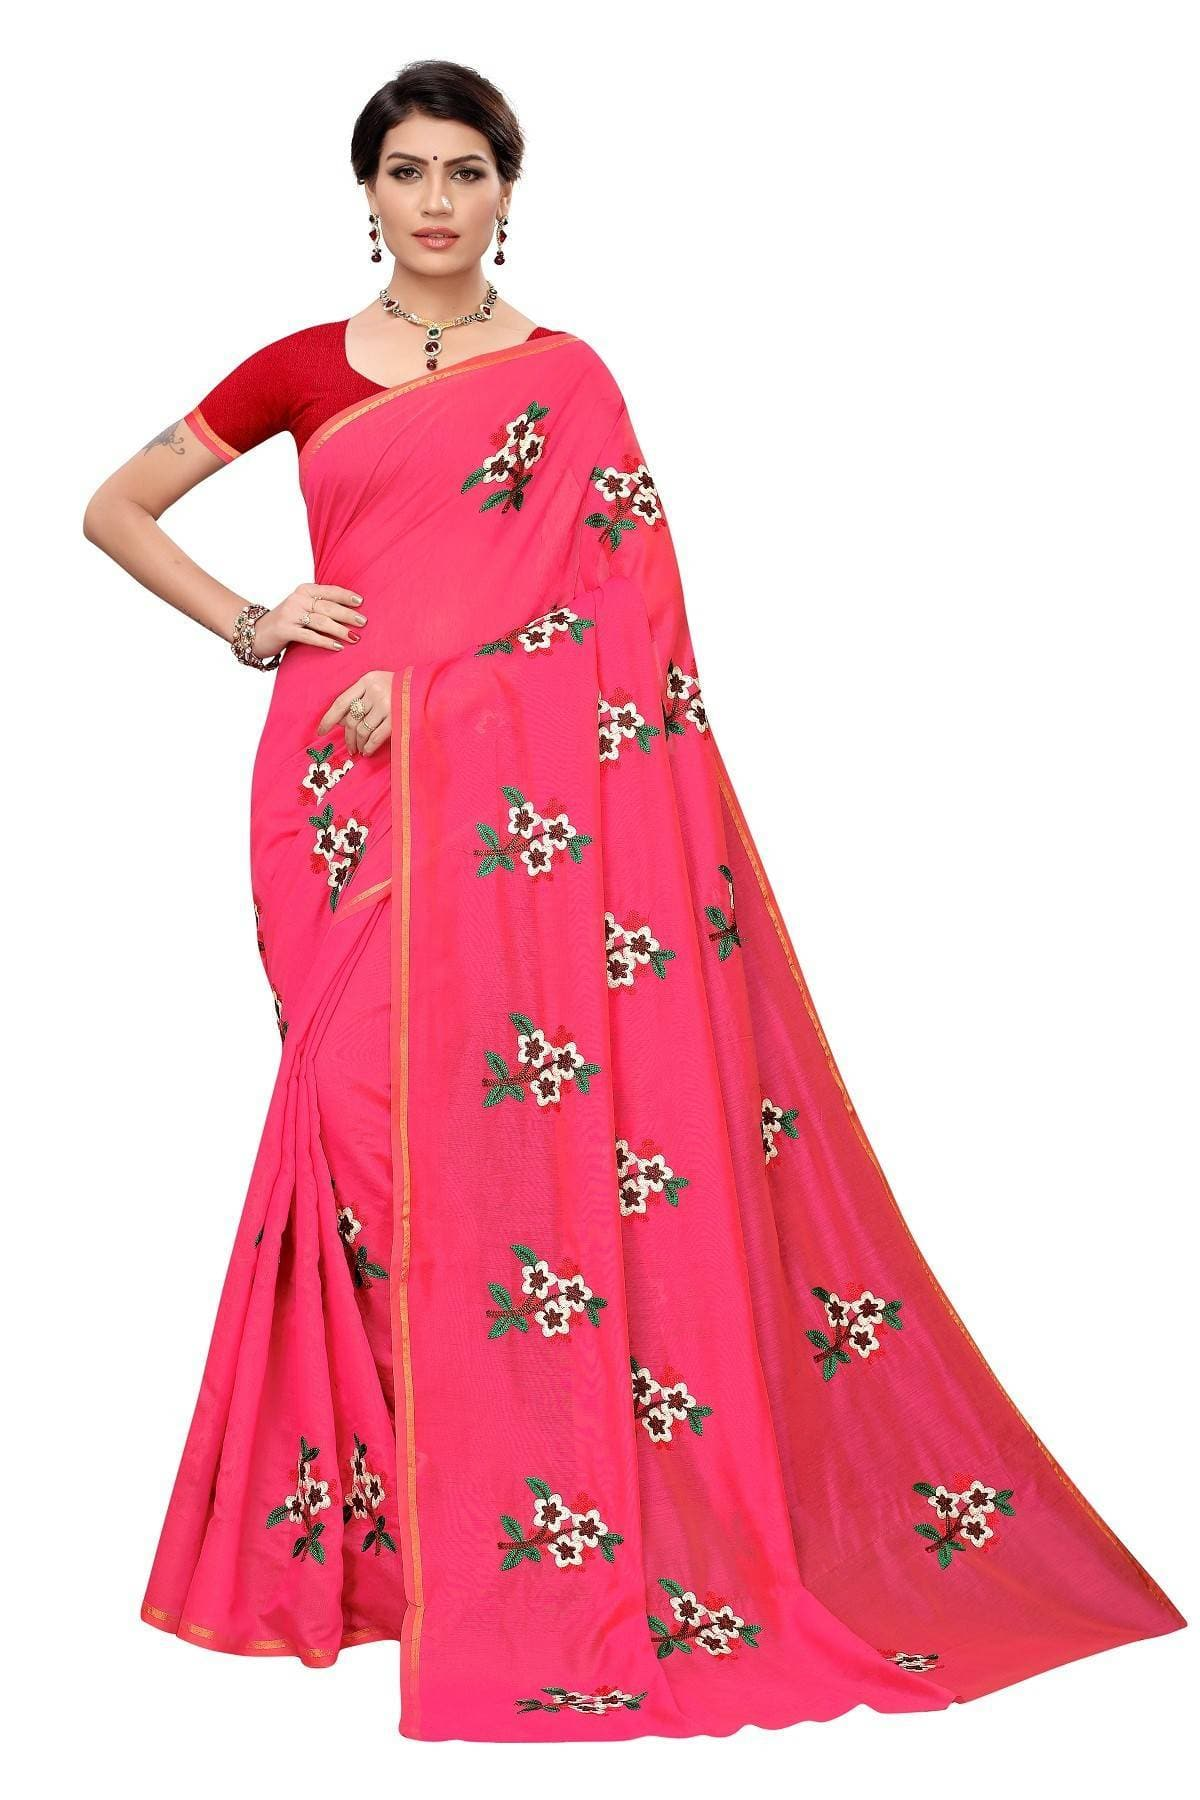 Vamika Pink Chanderi Cotton Embroidery Floral Saree